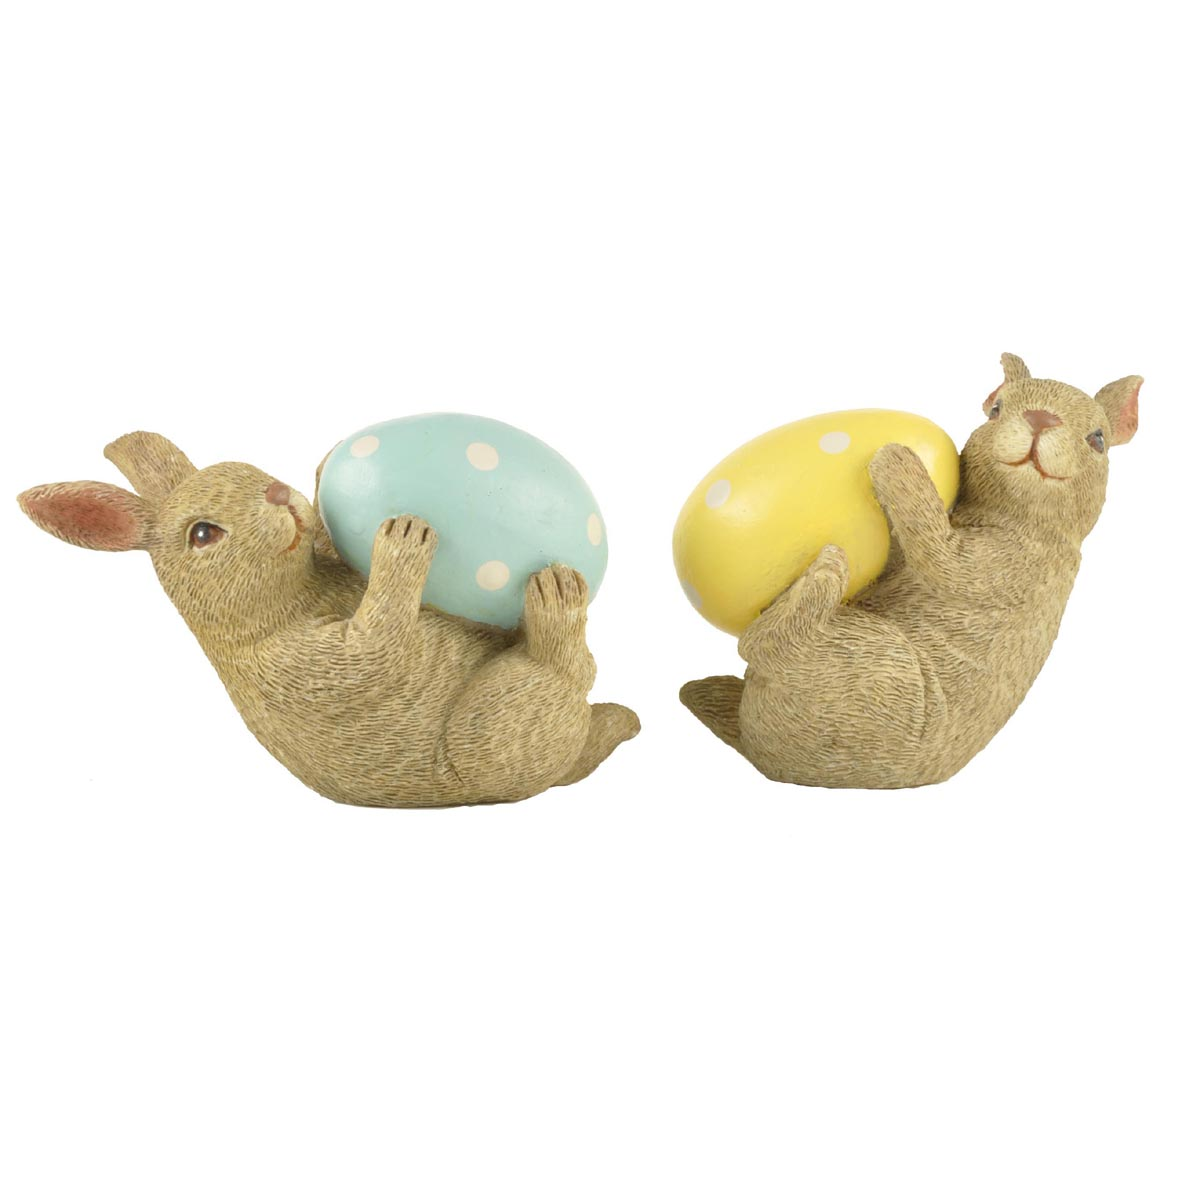 Ennas vintage easter bunny figurines top brand for holiday gift-1